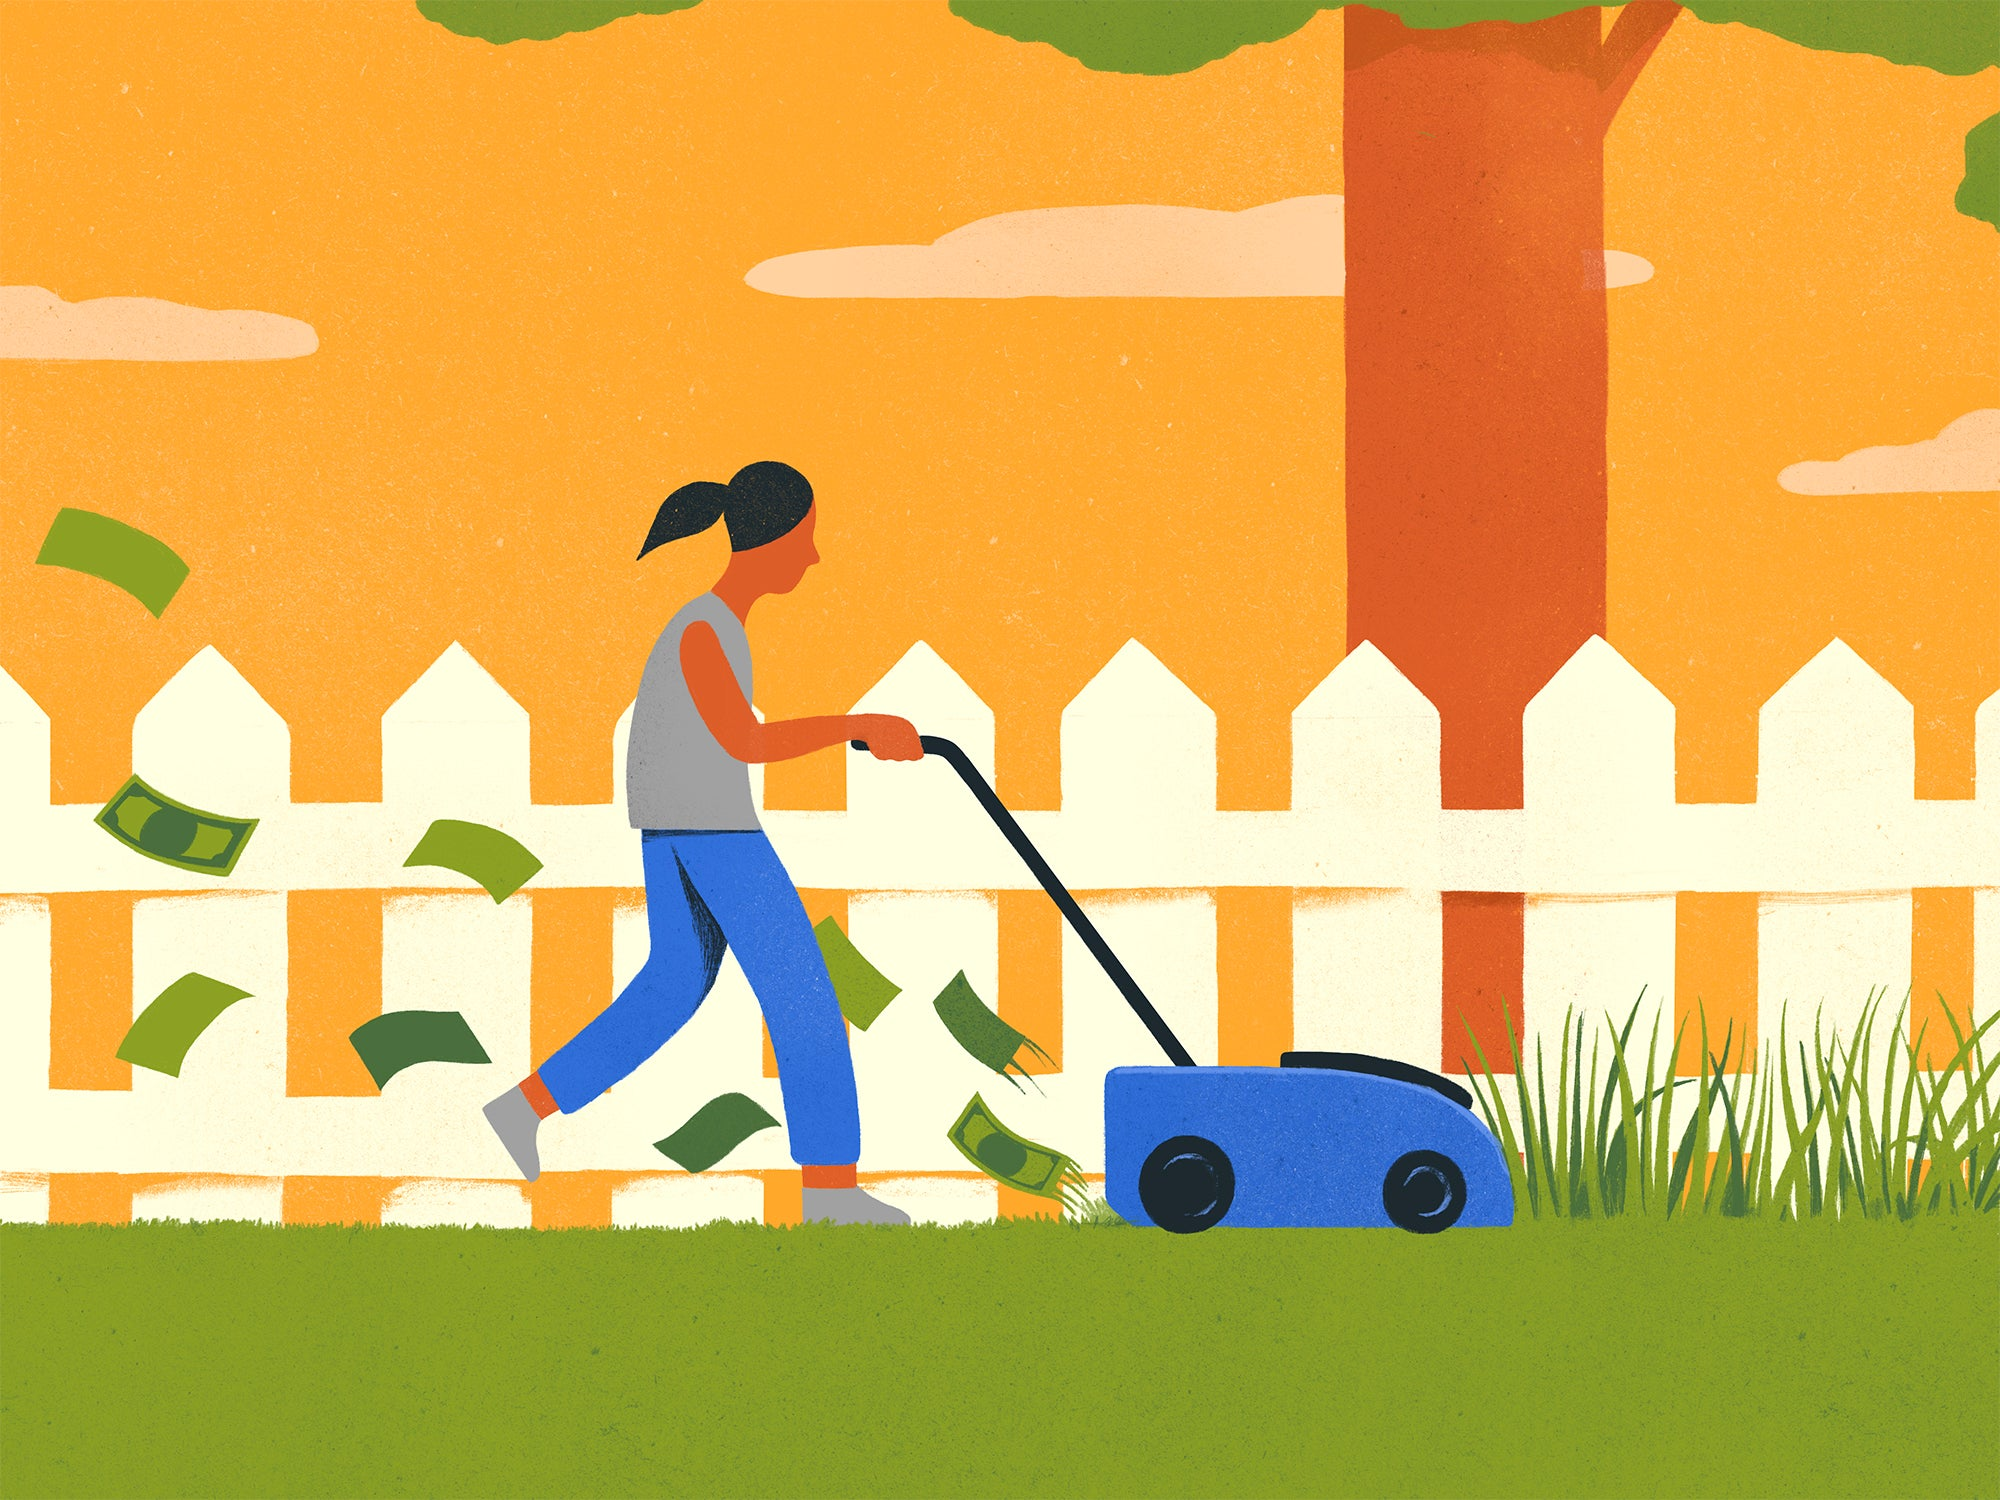 Illustration of a kid cutting grass. Money flies behind the lawnmower, signifying a kid-run service business